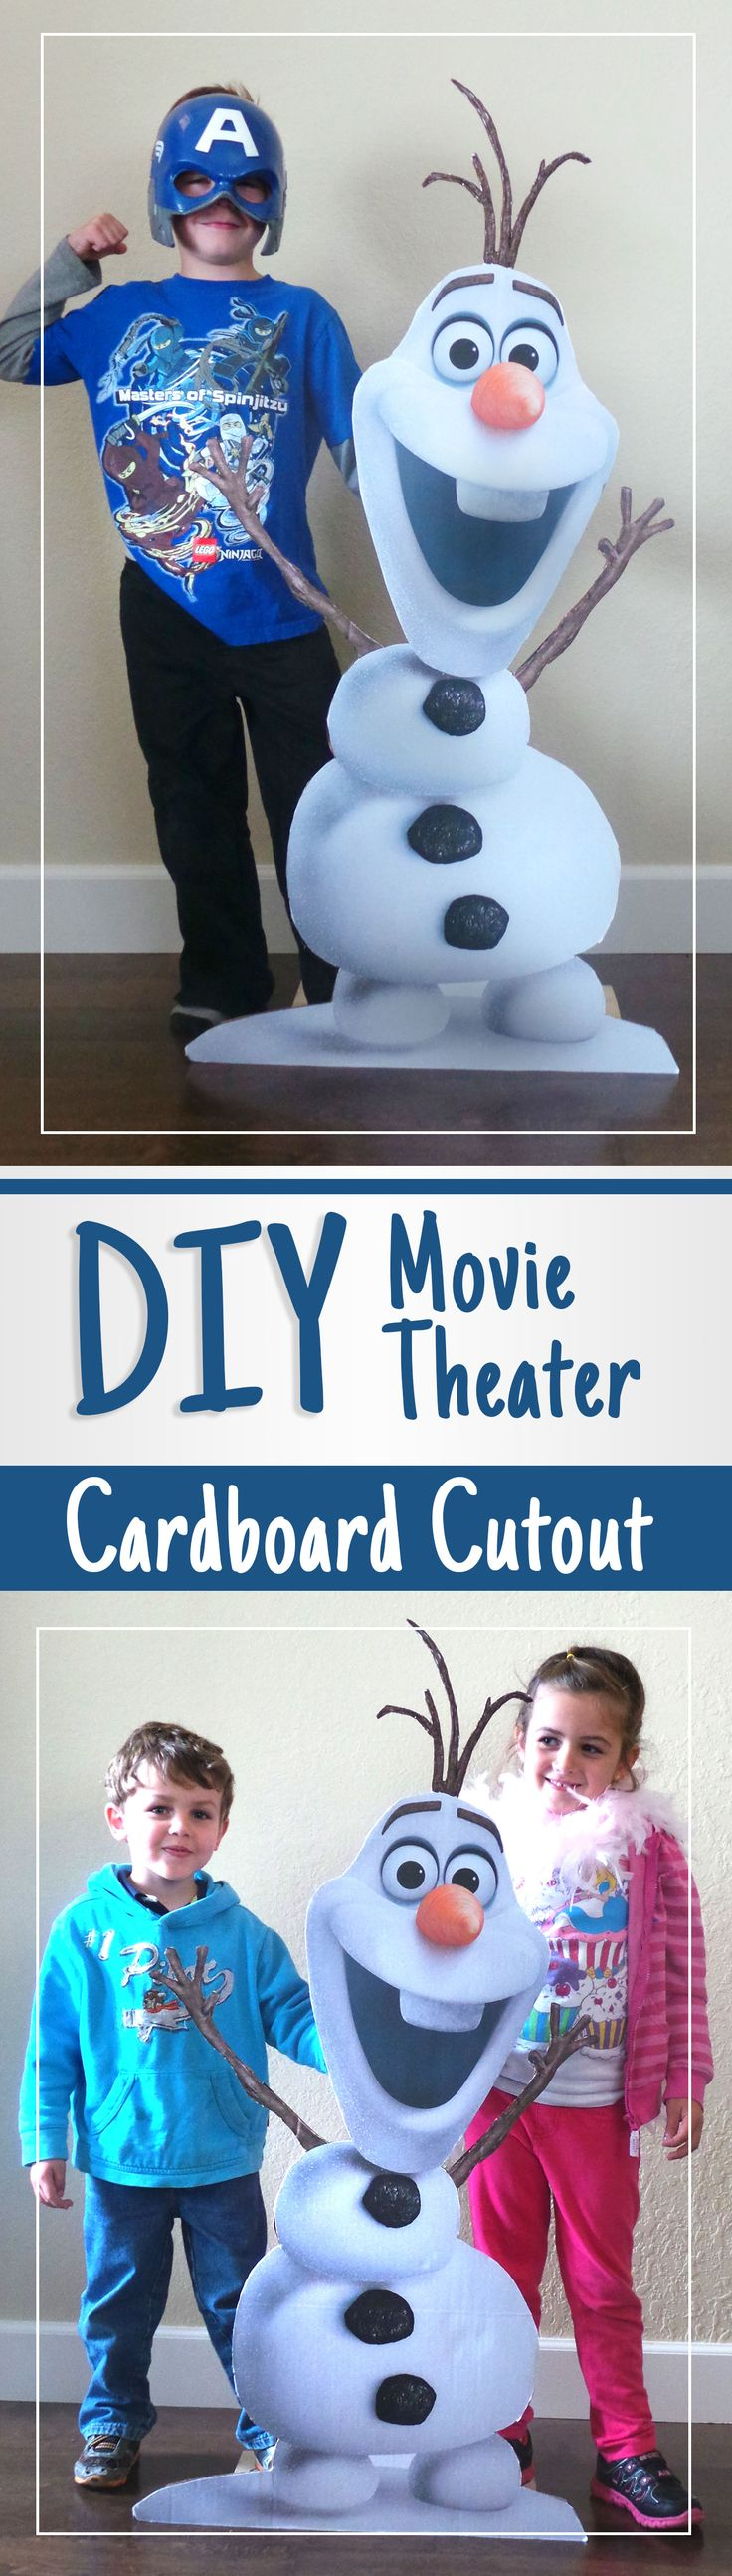 DIY movie theater cutouts. Easy to make cardboard stand ups for your parties using free printables! Check out our DIY Olaf stand up for taking pictures at birthday parties!